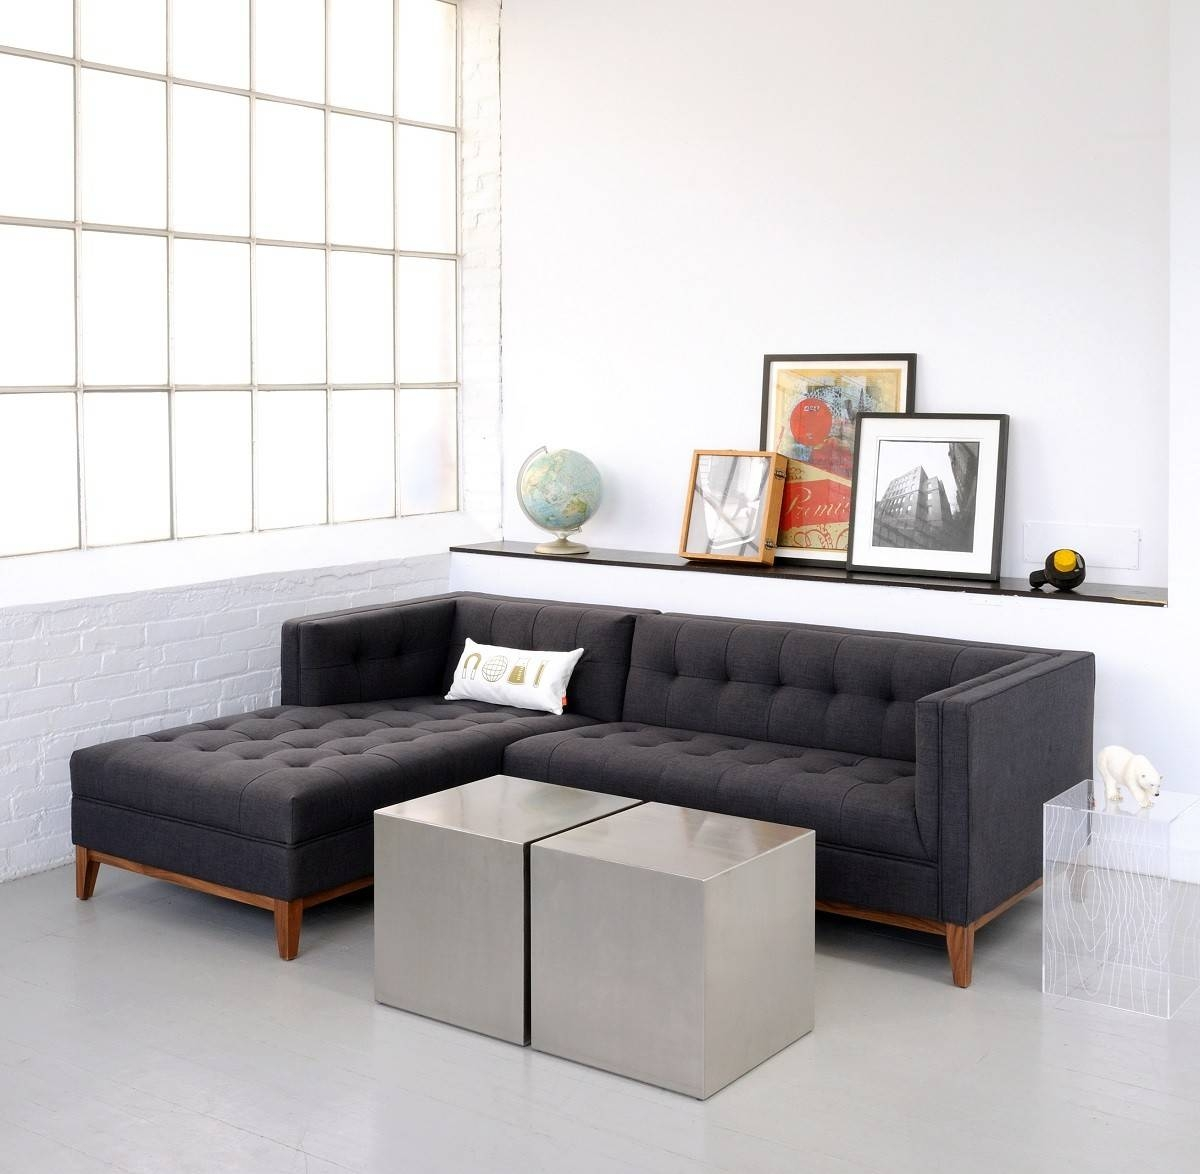 Amazing Apartment Size Sectional Sofa With Chaise 81 With with regard to Bentley Sectional Leather Sofa (Image 6 of 30)